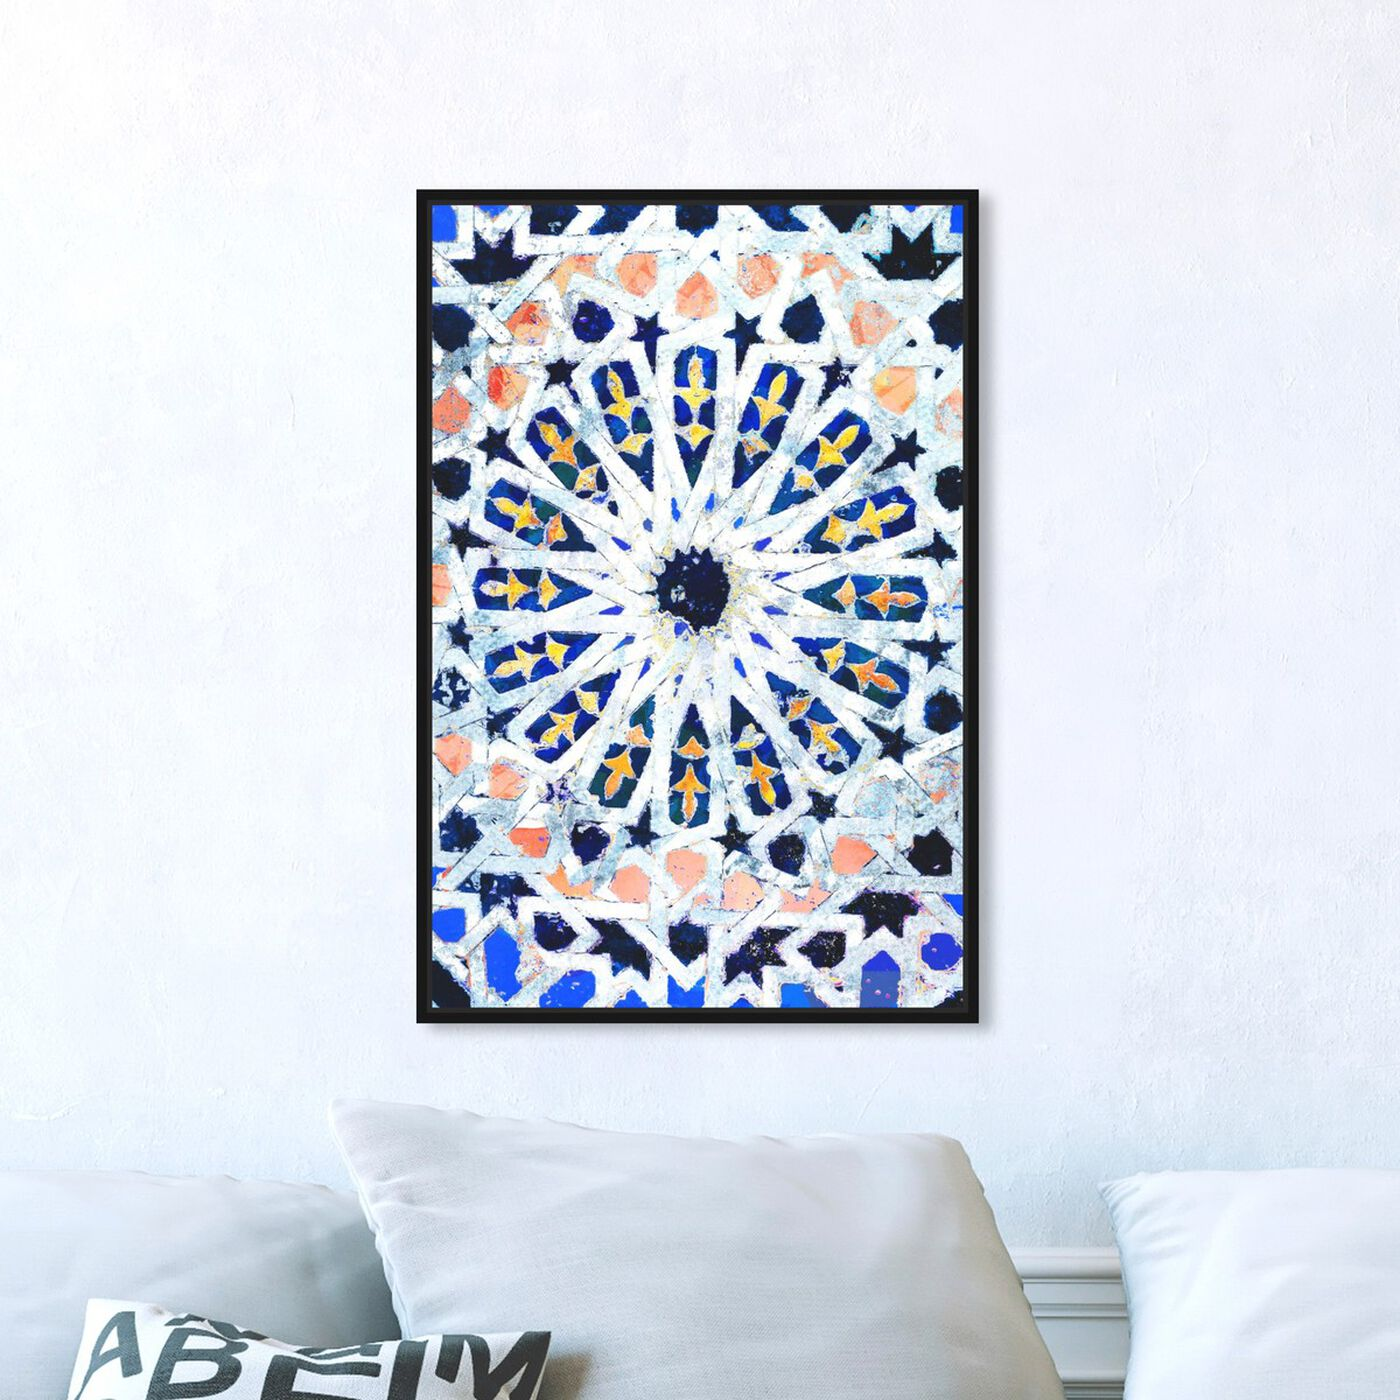 Hanging view of Azahar featuring abstract and patterns art.